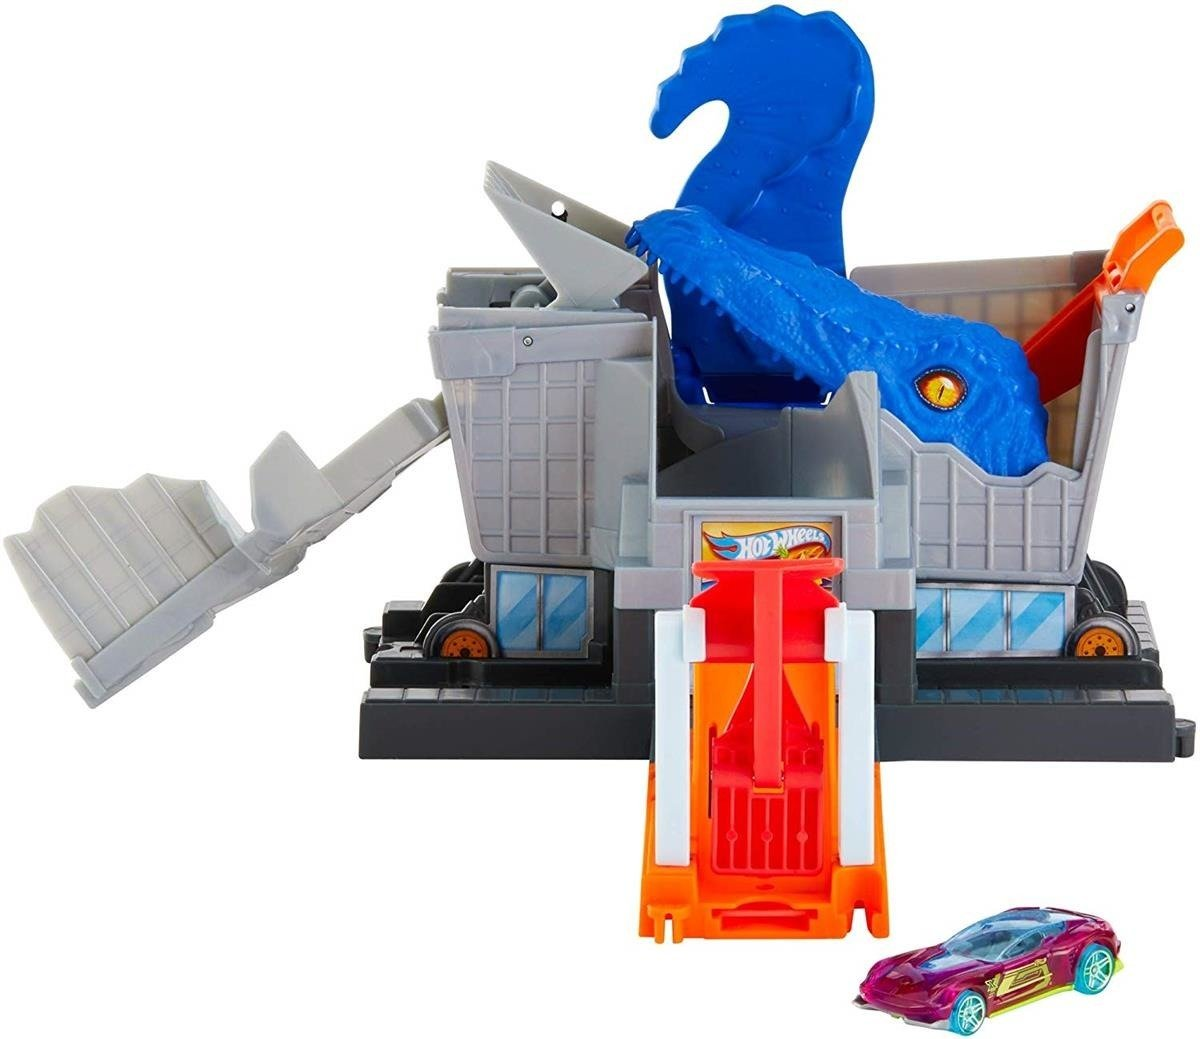 HOT WHEELS CITY Atak T-Rexa Na Supermarket